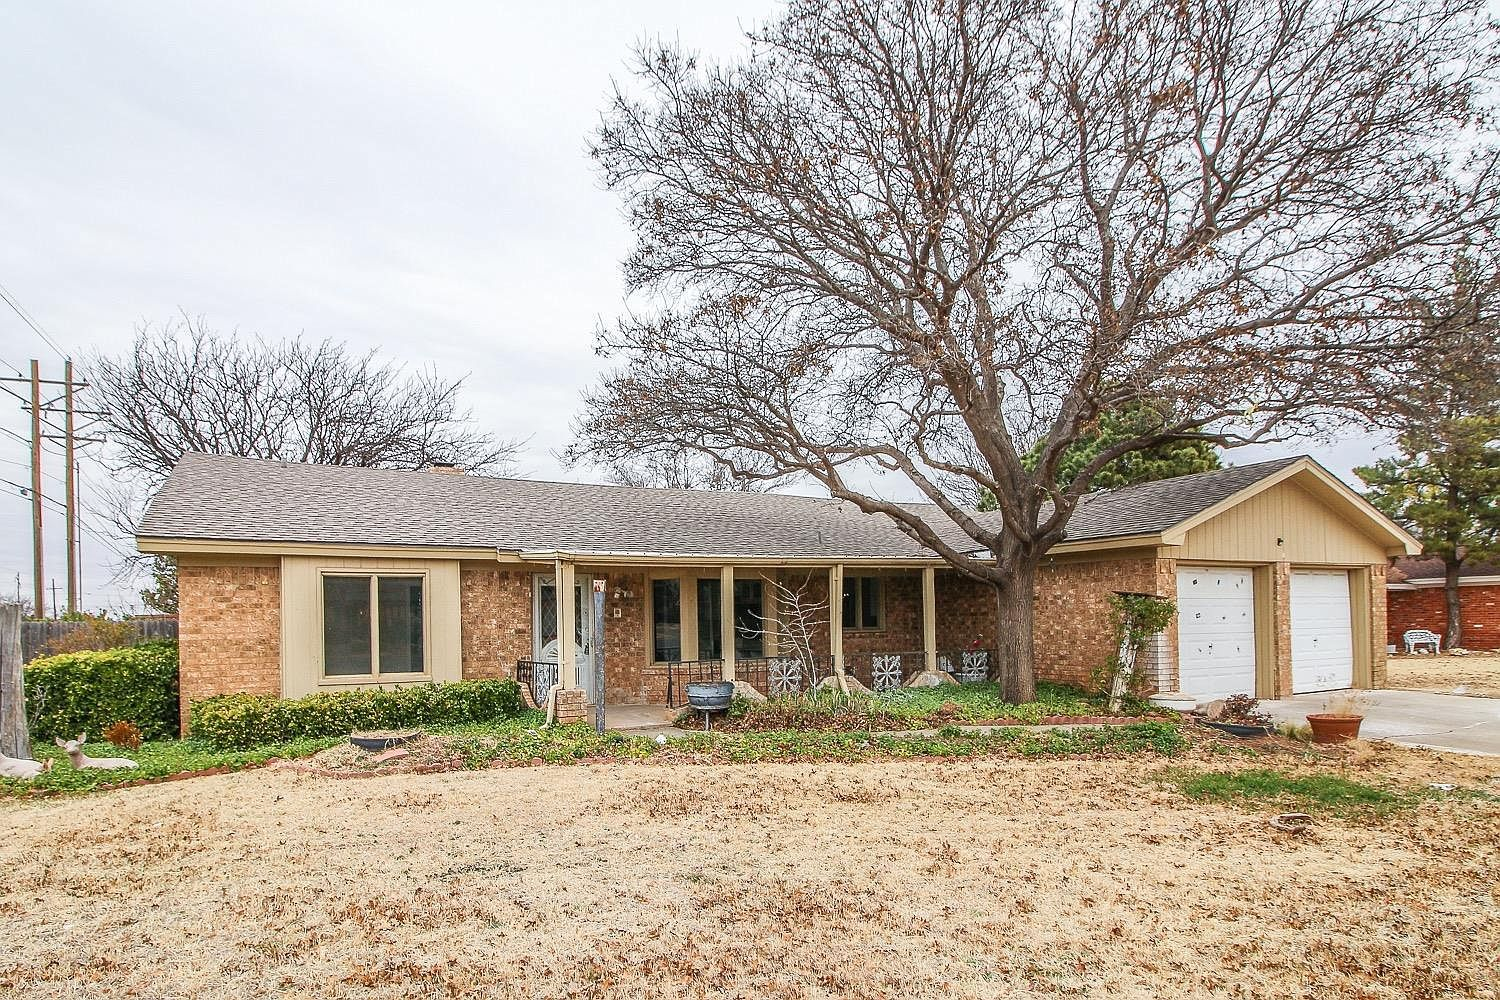 3316 76th St, Lubbock, TX 79423 in 2020 | Carpet dining ...